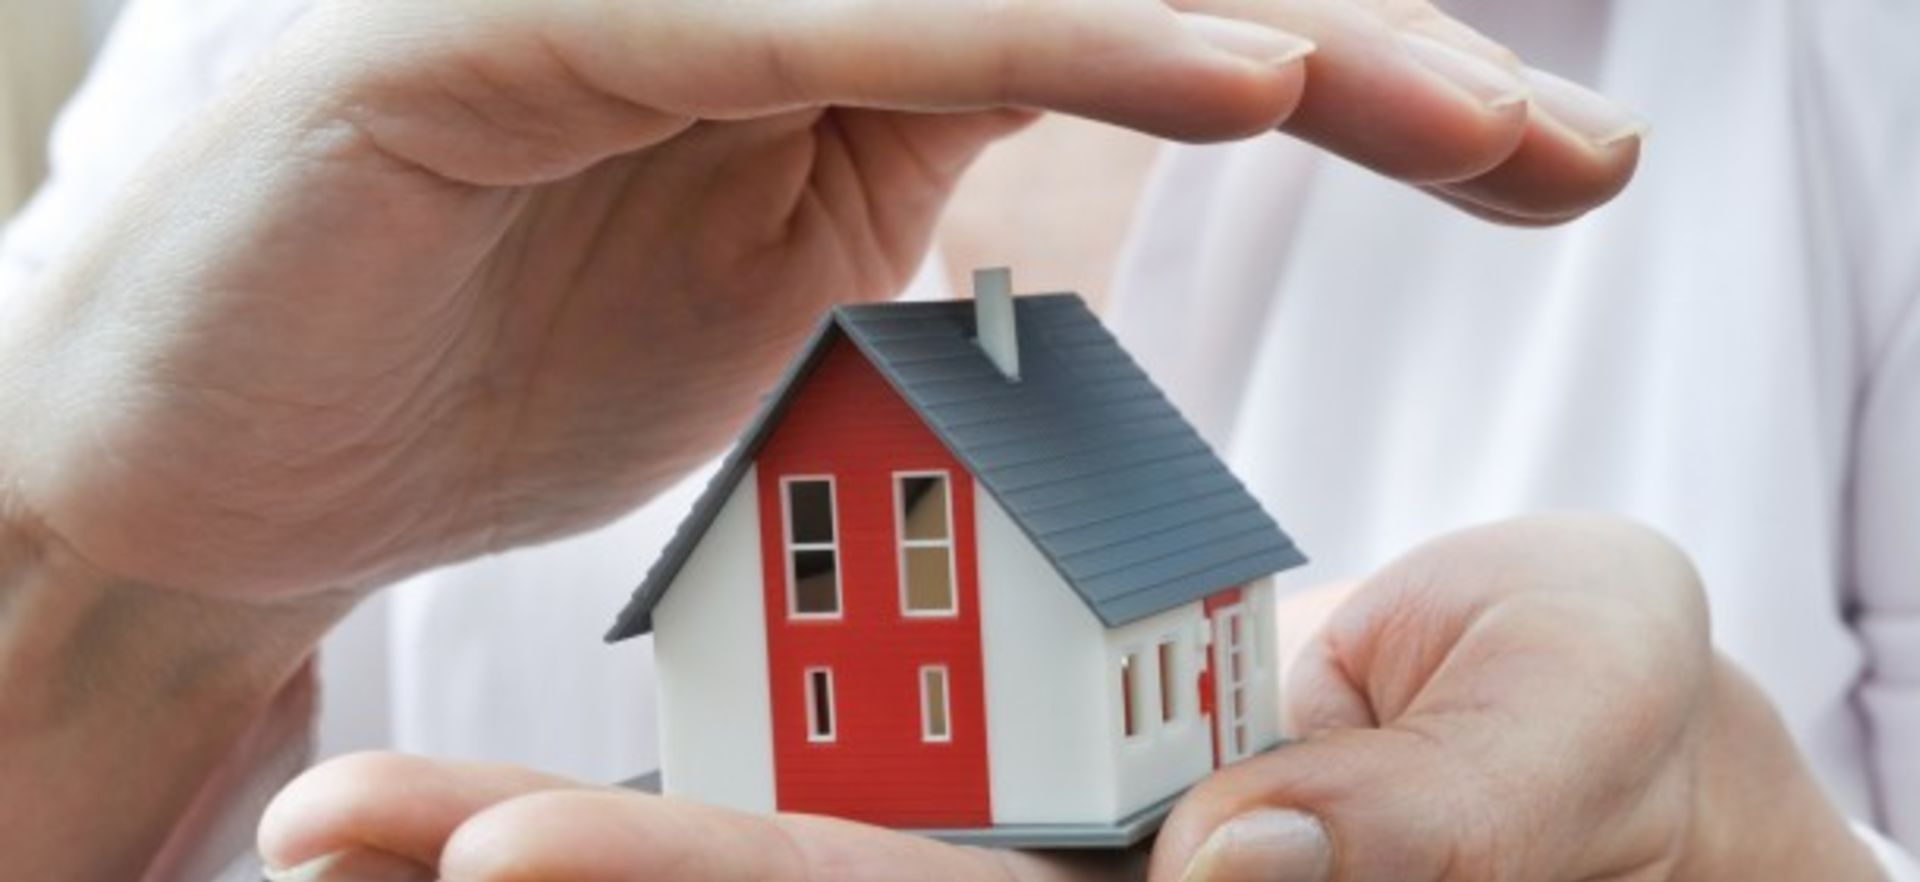 Does Your Credit Score Affect Your Homeowners Insurance?